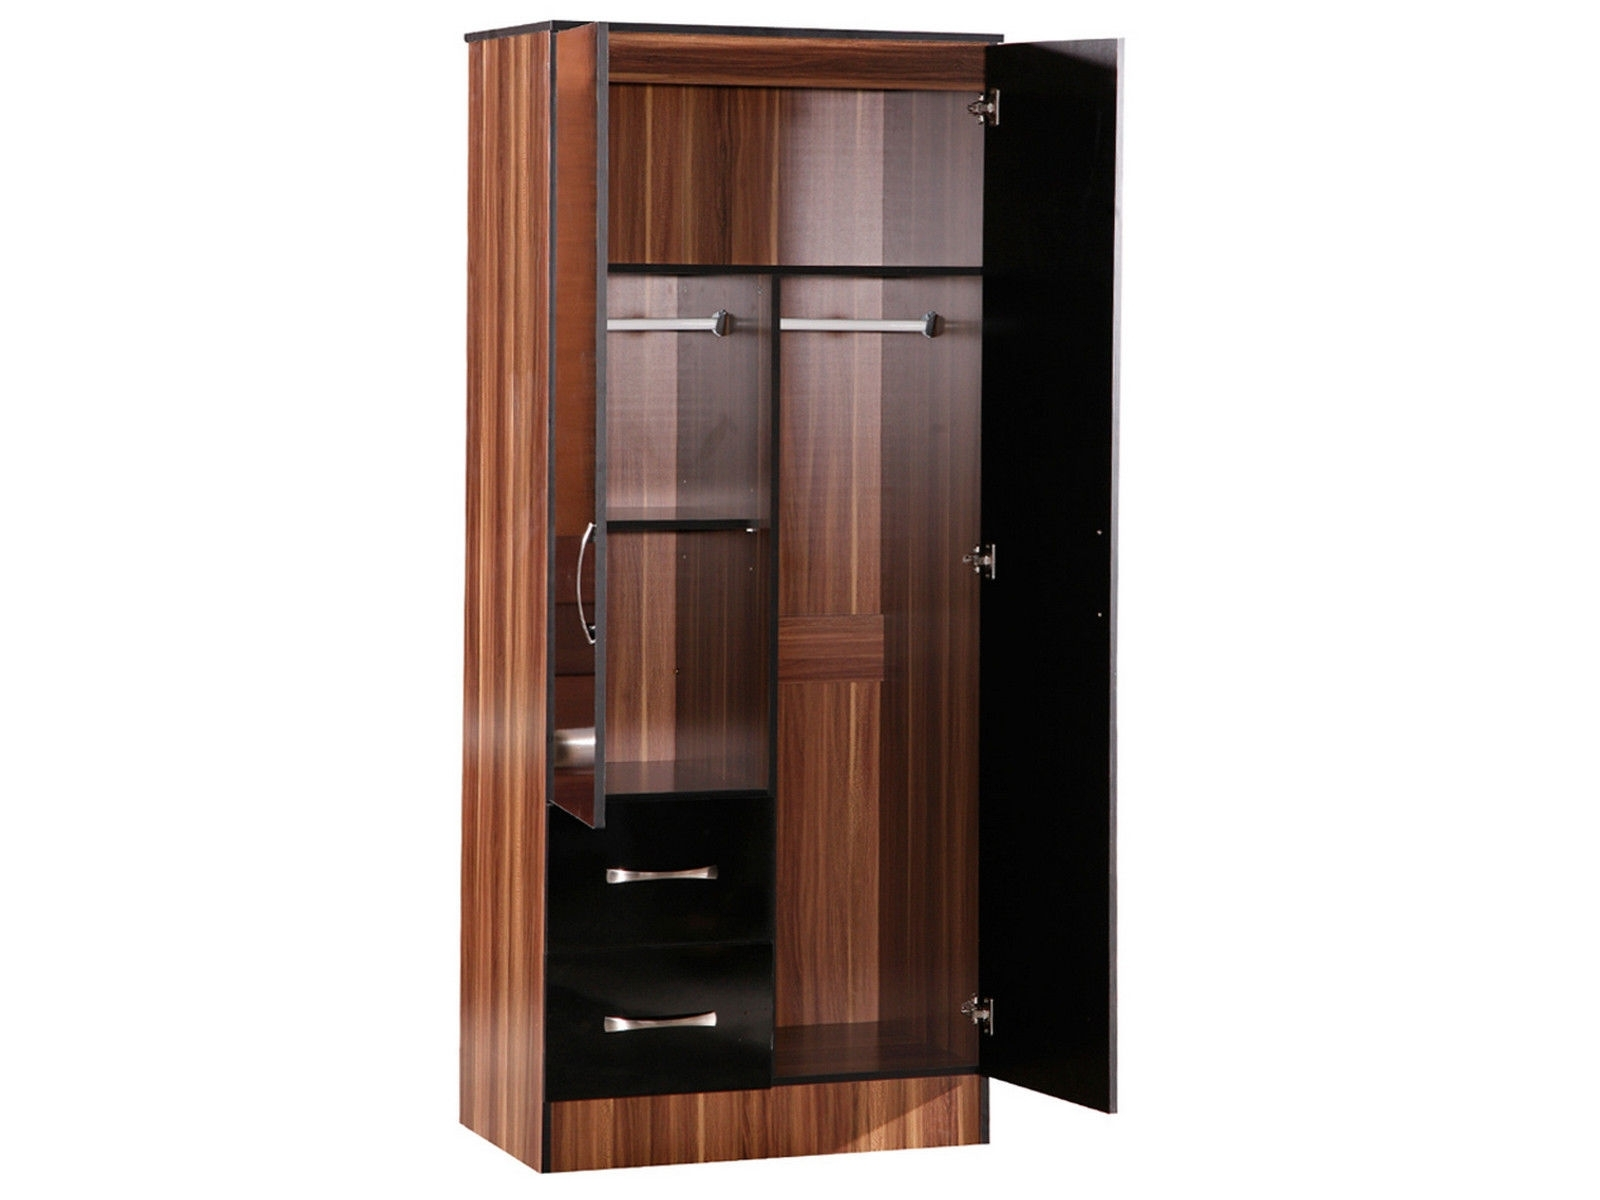 Fashionable Bedroom : Bedroom Furniture Wardrobe 56 Love Bedroom Lynx Walnut With 2 Door Wardrobes With Drawers And Shelves (View 9 of 15)